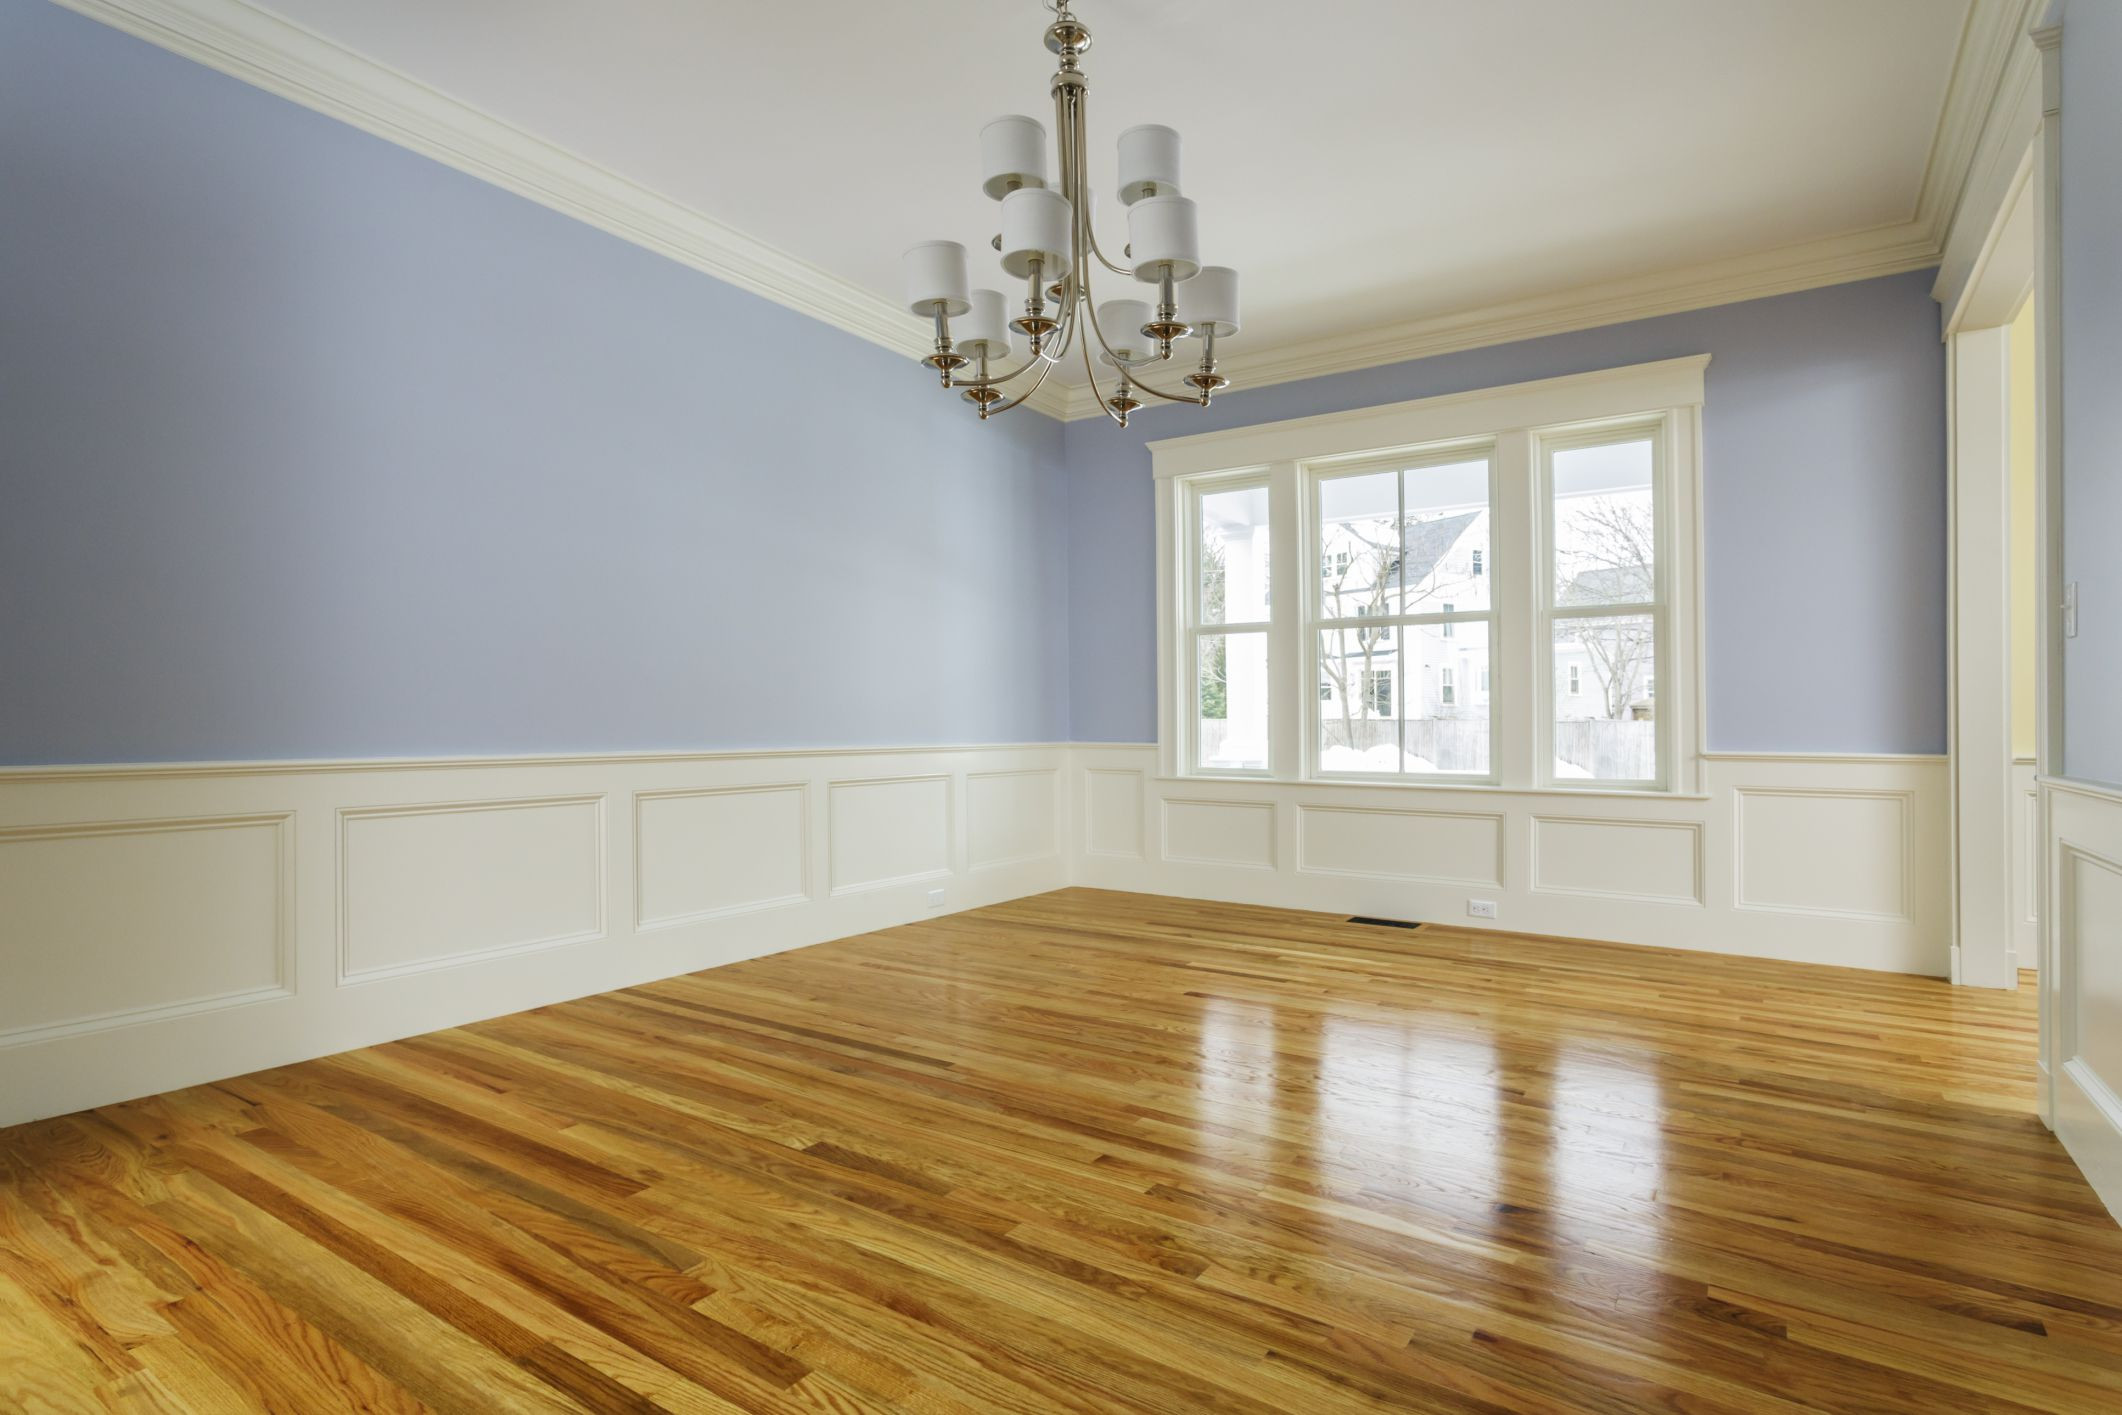 hardwood floor refinishing specialists of the cost to refinish hardwood floors with regard to 168686572 highres 56a2fd773df78cf7727b6cb3